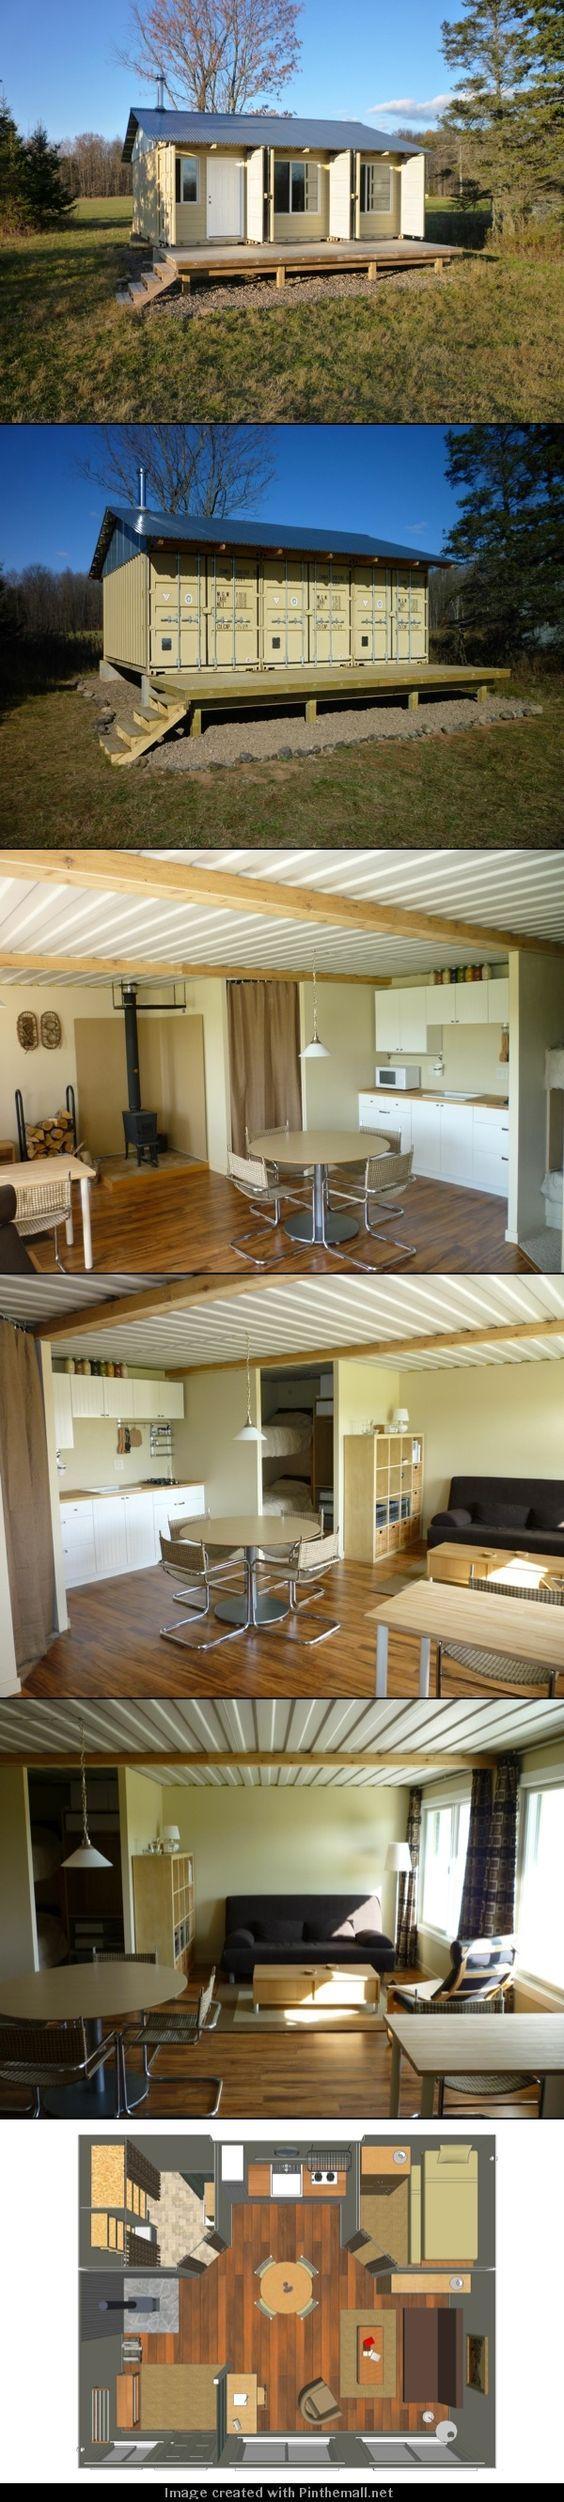 Container house: